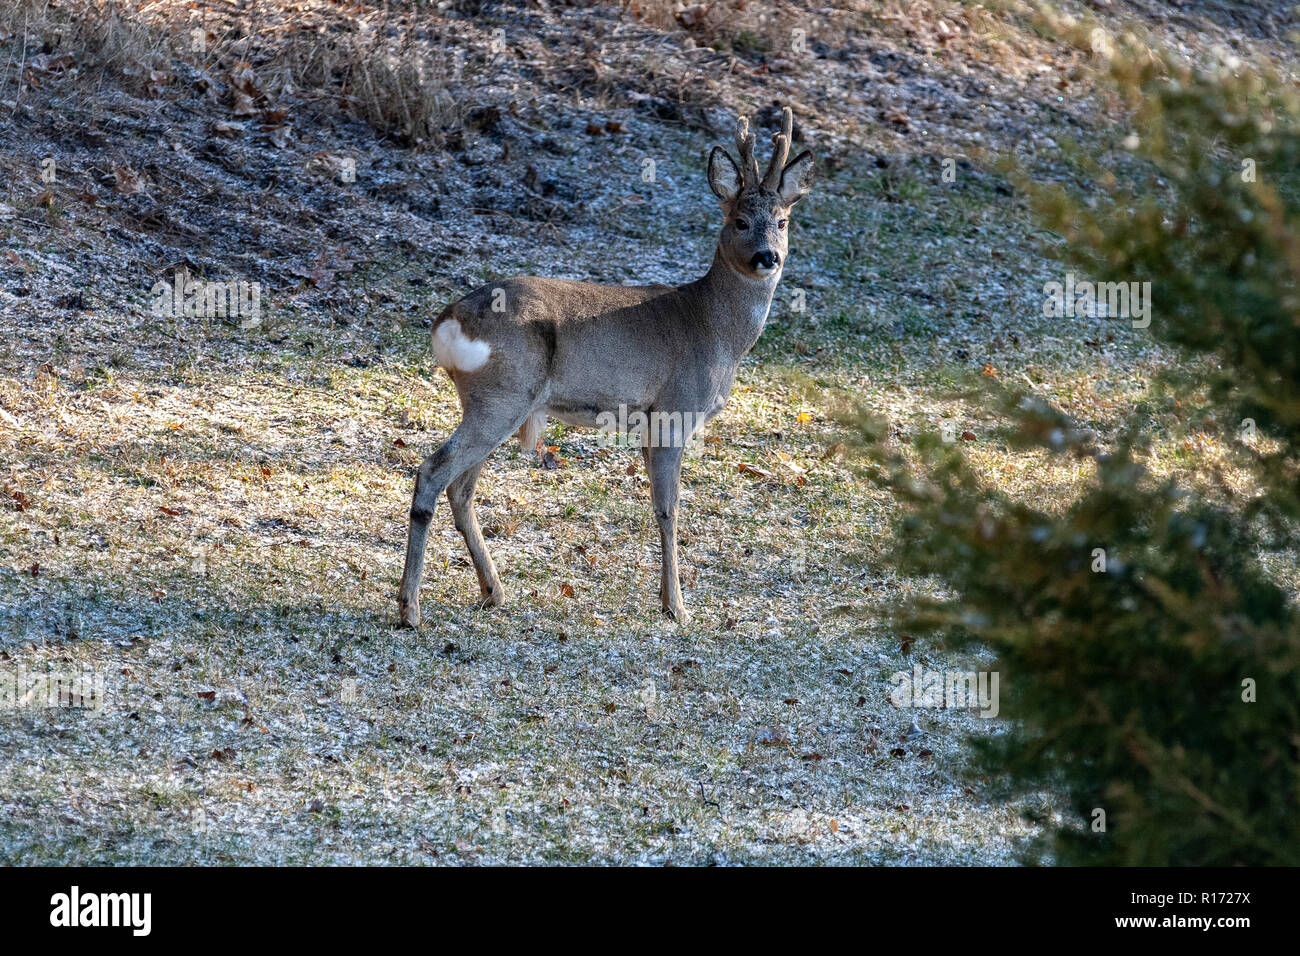 Roe Deer (Capreolus), Europe, Poland - Stock Image